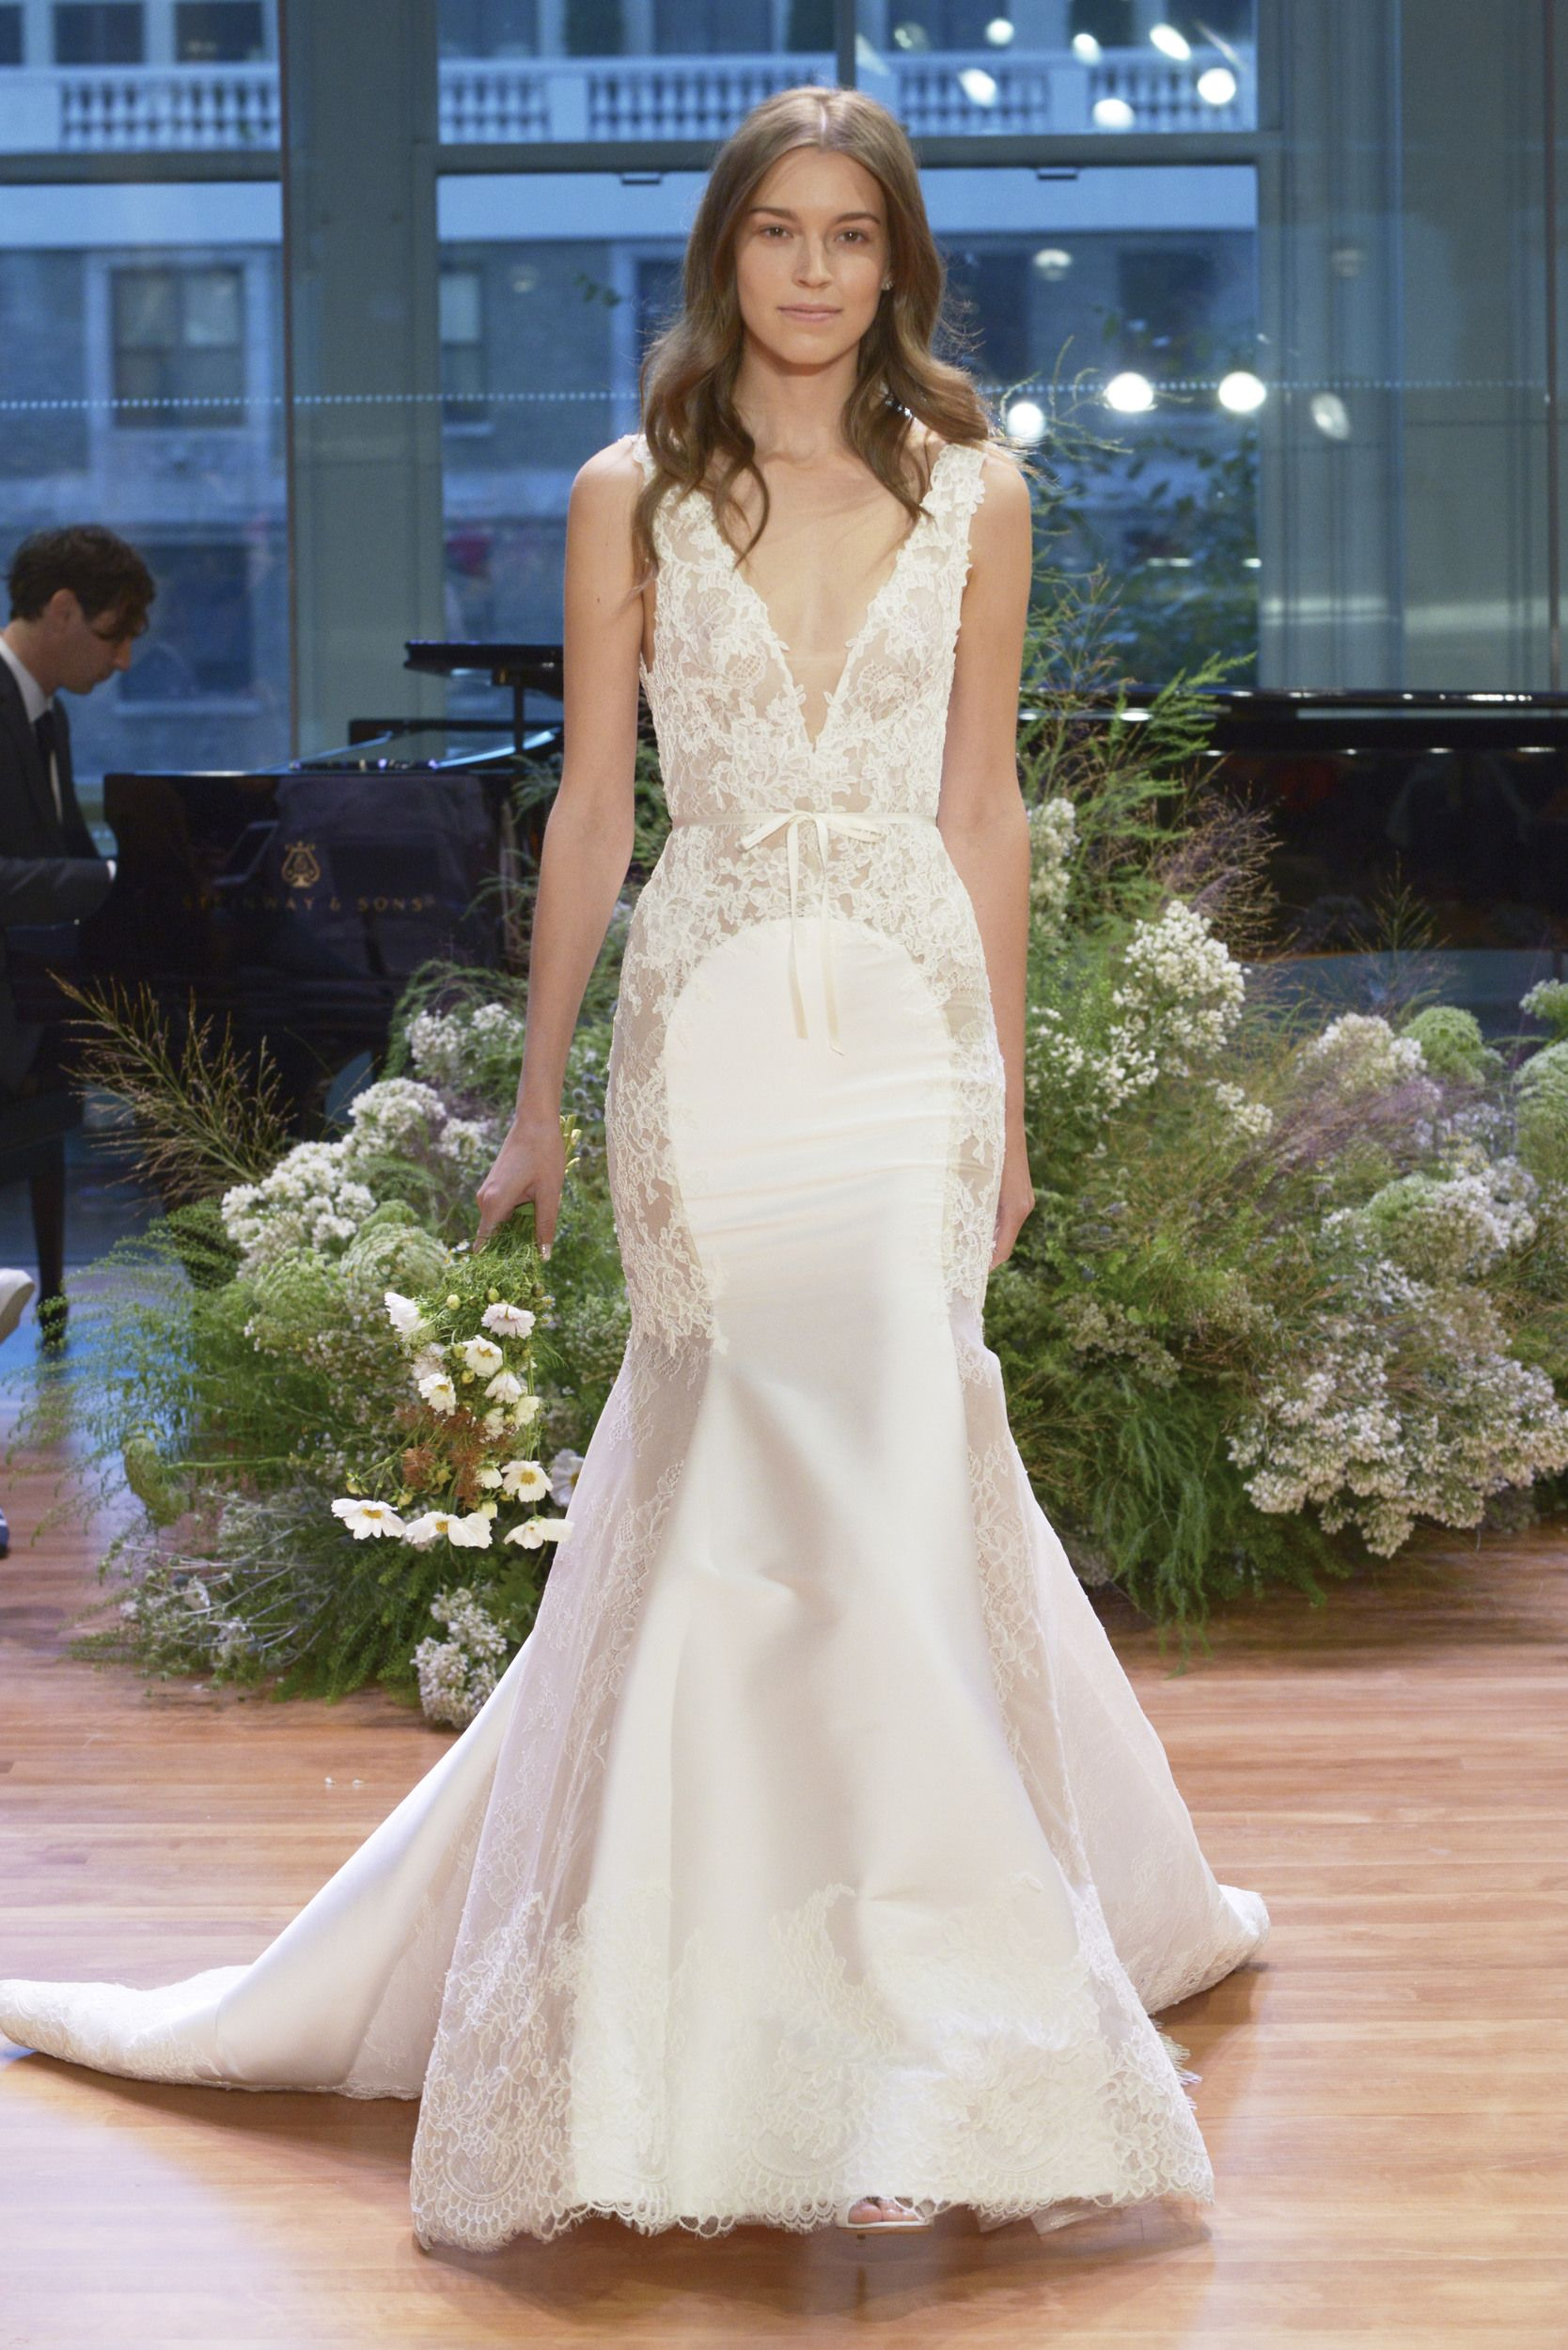 Monique Lhuillier Bridal Fall 2017: What dreams are made of ...